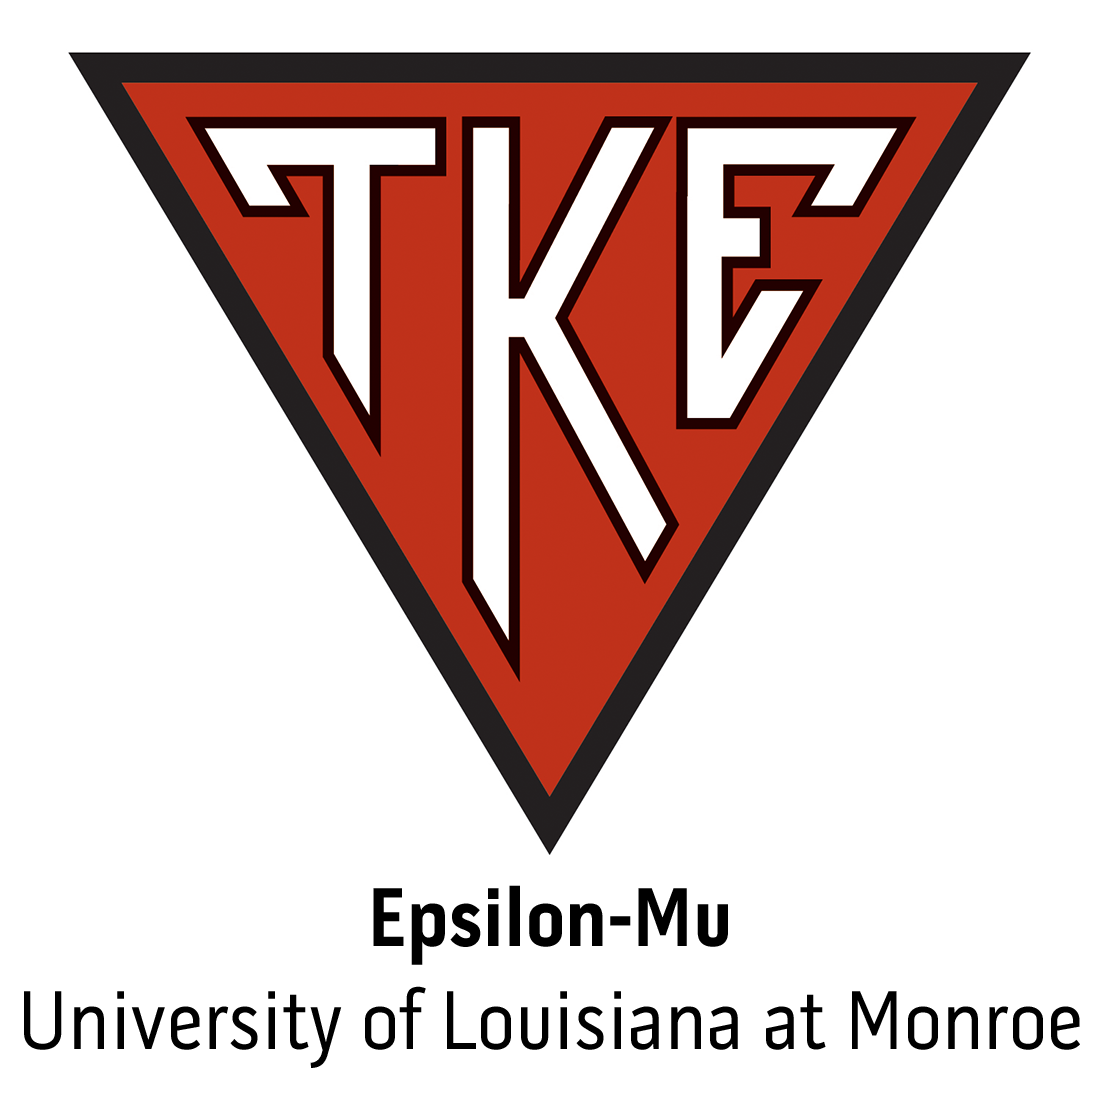 Epsilon-Mu Chapter at University of Louisiana at Monroe